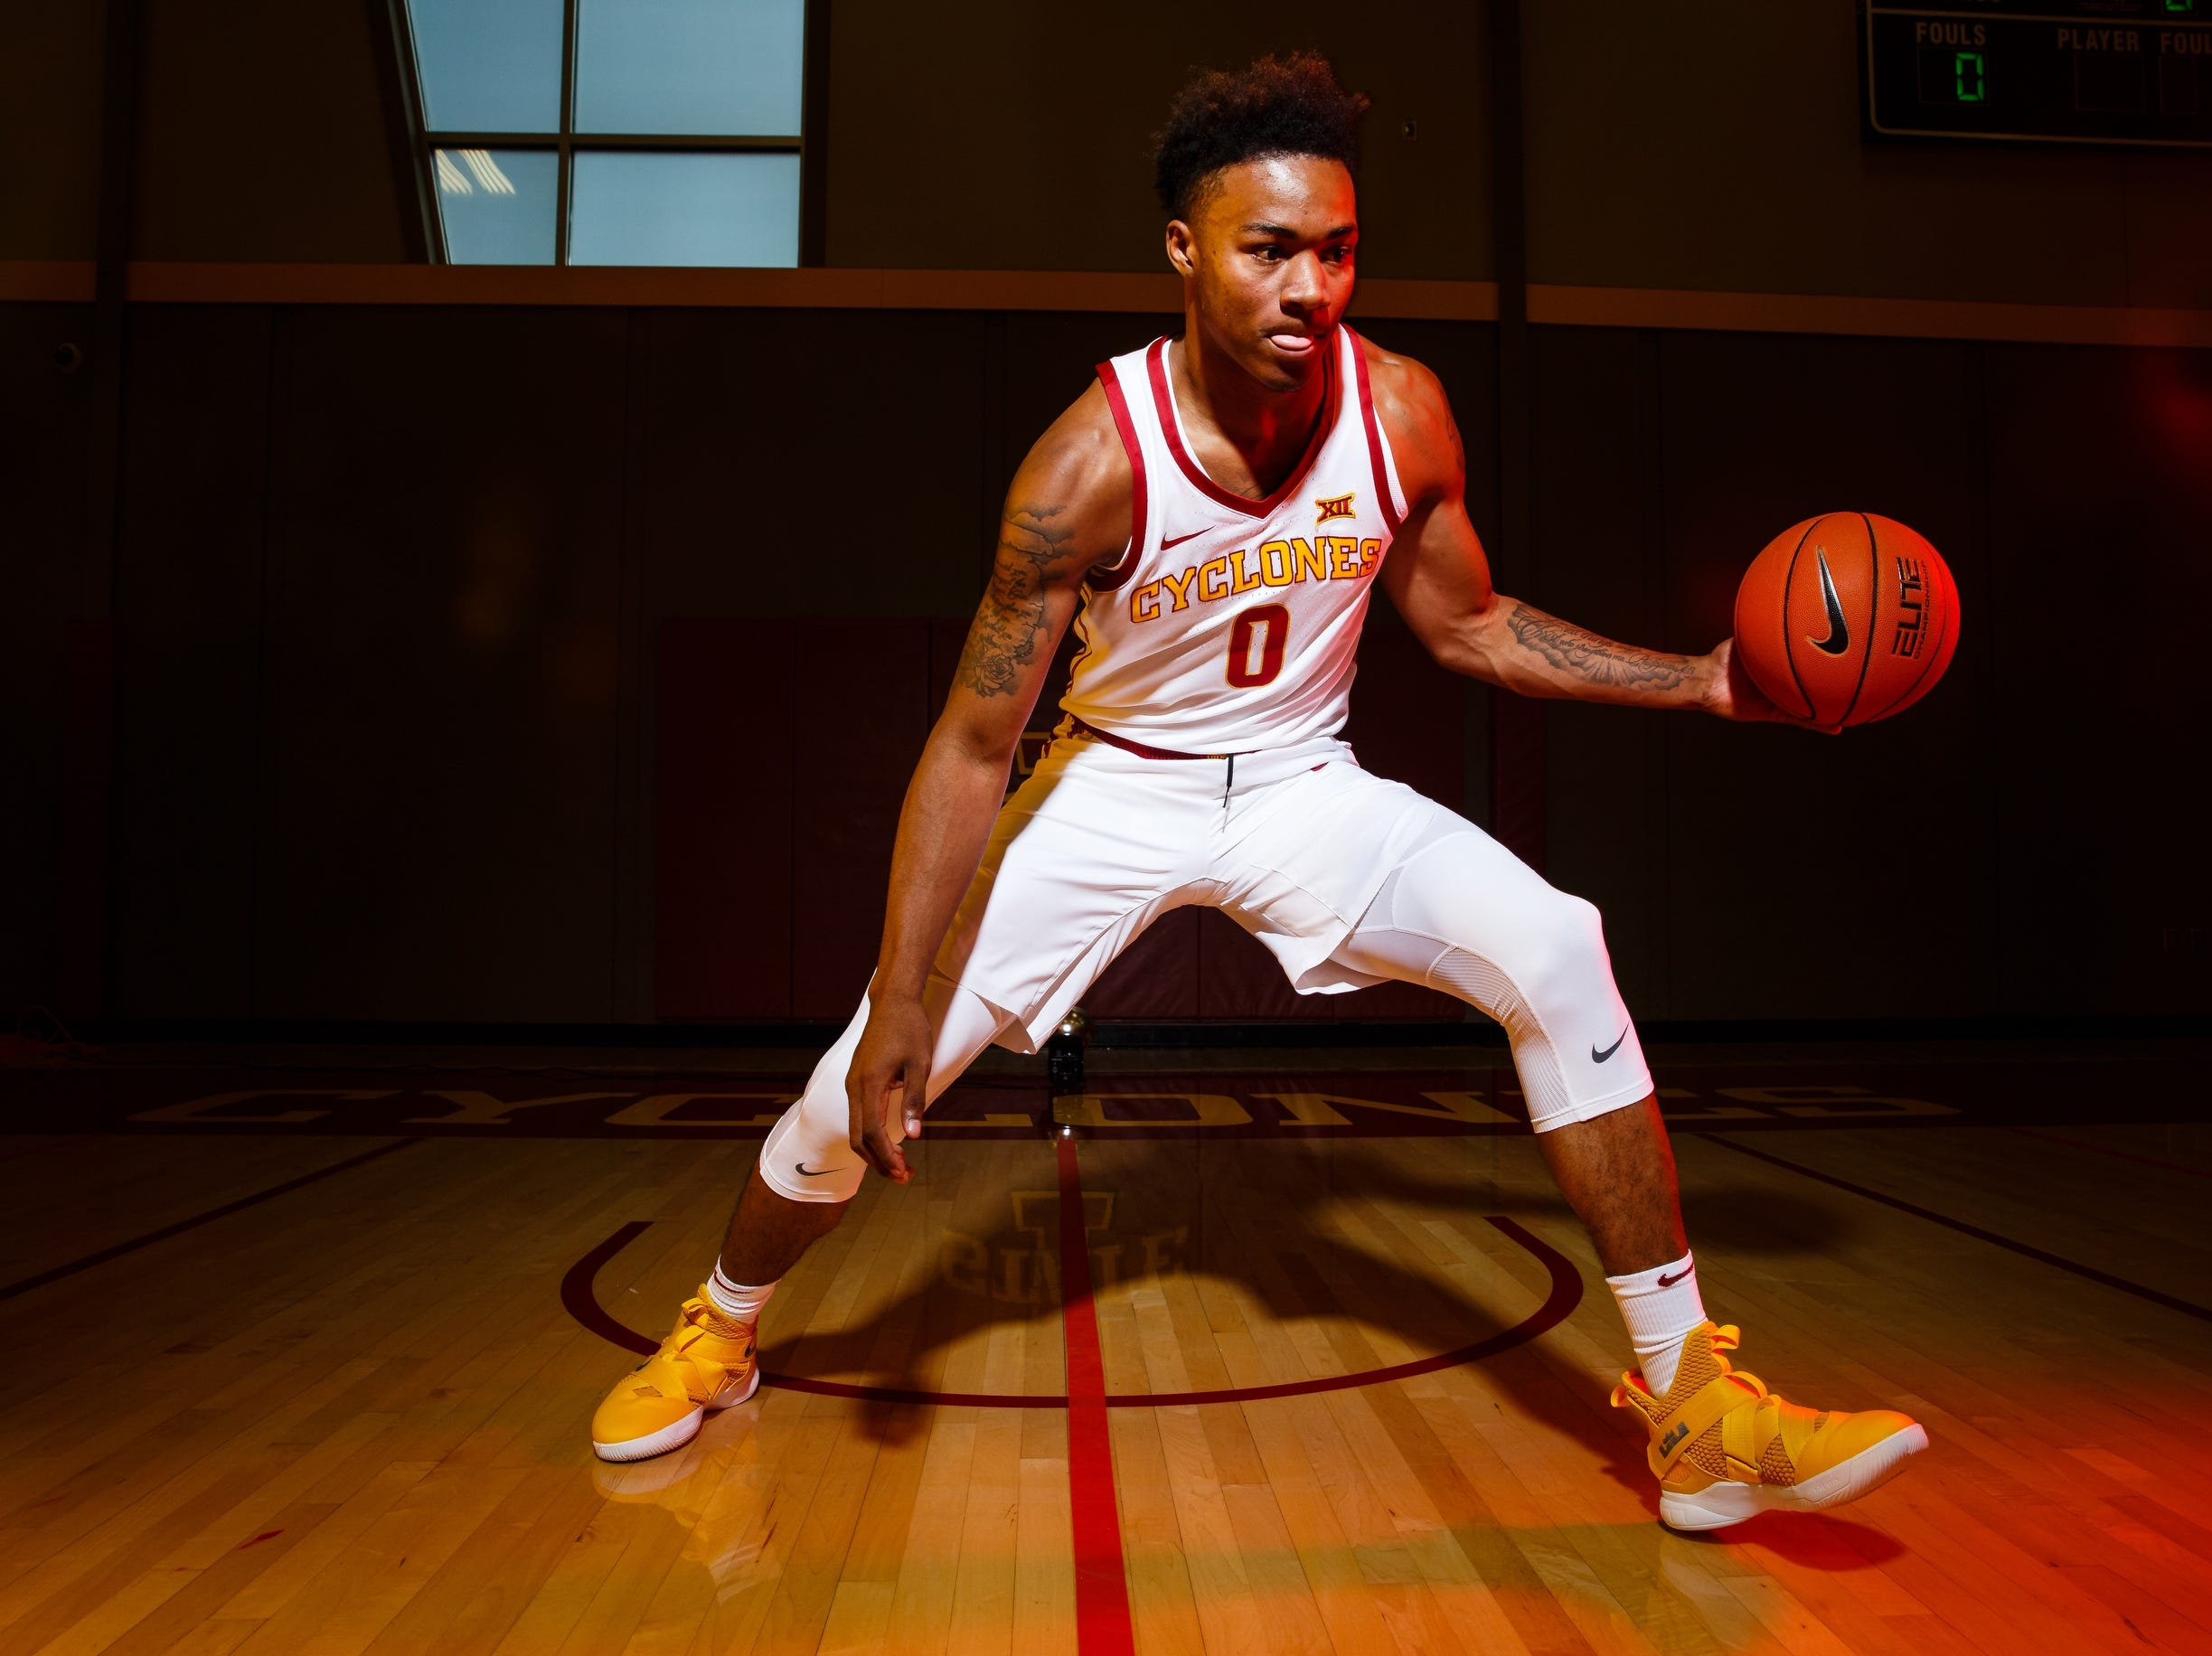 Iowa State's Zion Griffin poses for a photo during media day on Thursday, Oct. 11, 2018, in Ames.